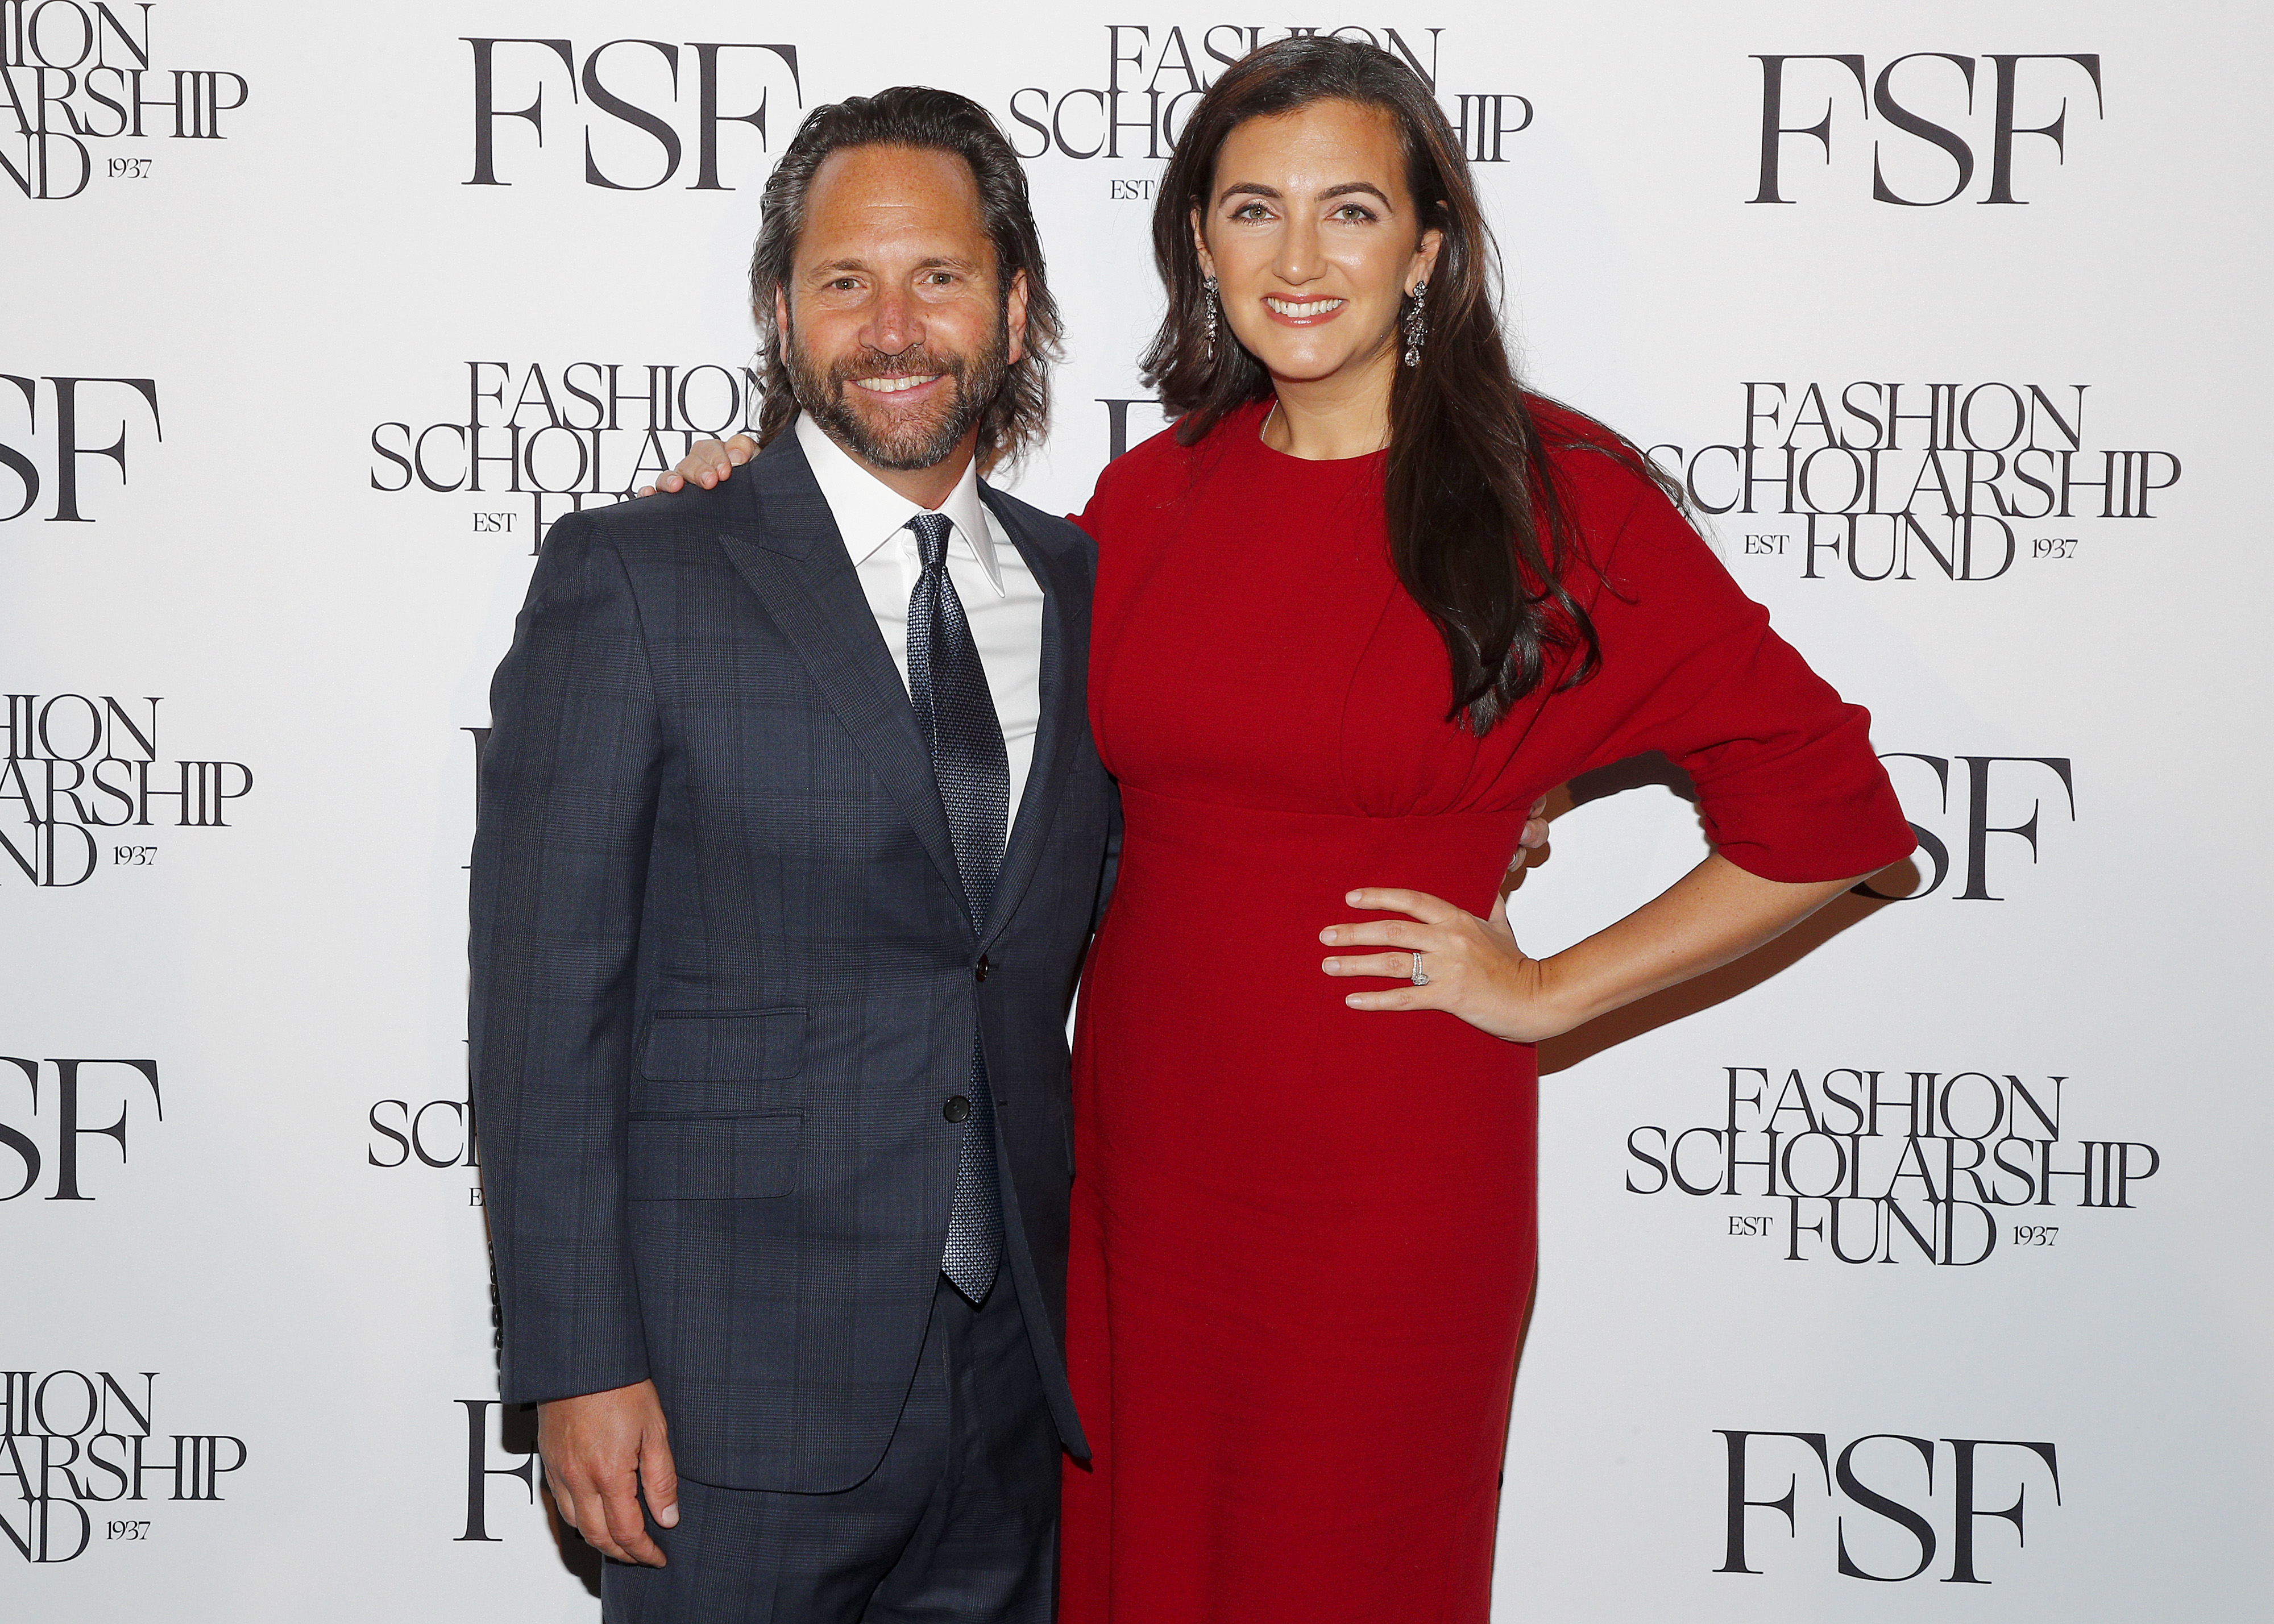 Honorees, Centric Brands' chief executive officer Jason Rabin and Rent The Runway's ceo Jennifer Hyman attend The Fashion Scholarship Fund Gala.